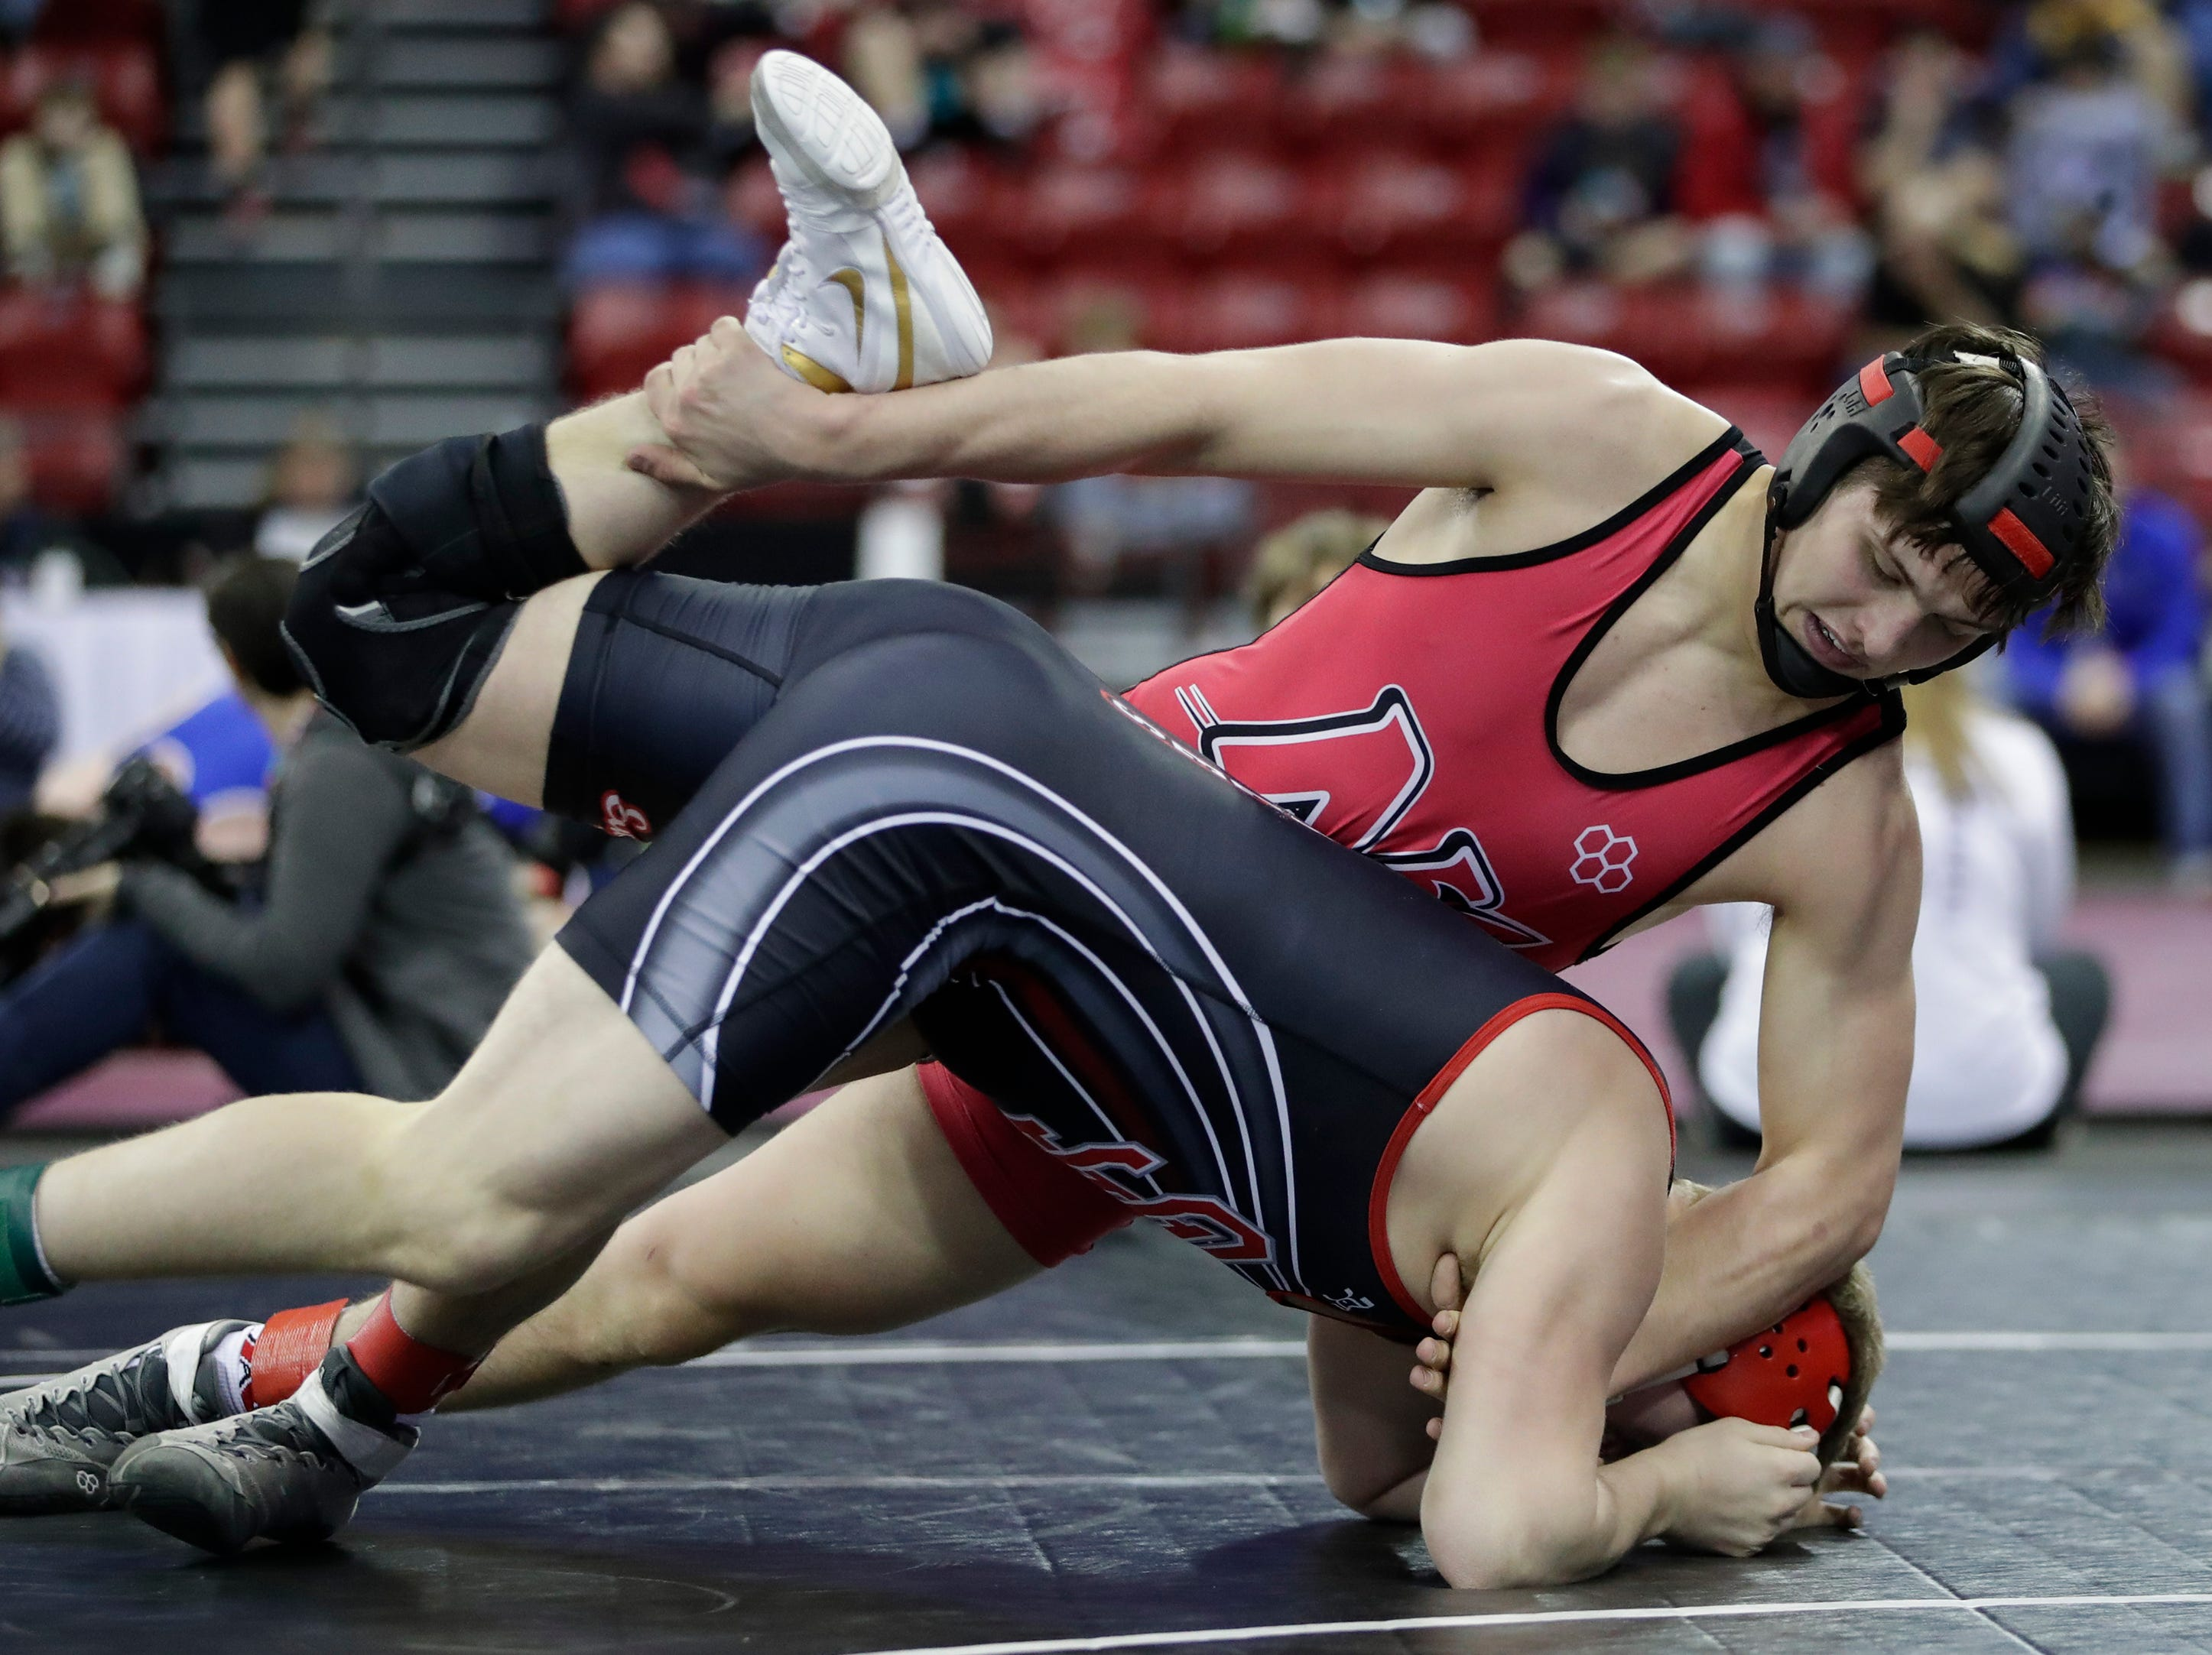 Neenah's Marshall Kools wrestles Sauk Prairie's Marcus Hankins in a Division 1 195-pound weight class preliminary match during the WIAA state individual wrestling tournament at the Kohl Center Thursday, February 21, 2019, in Madison, Wis.